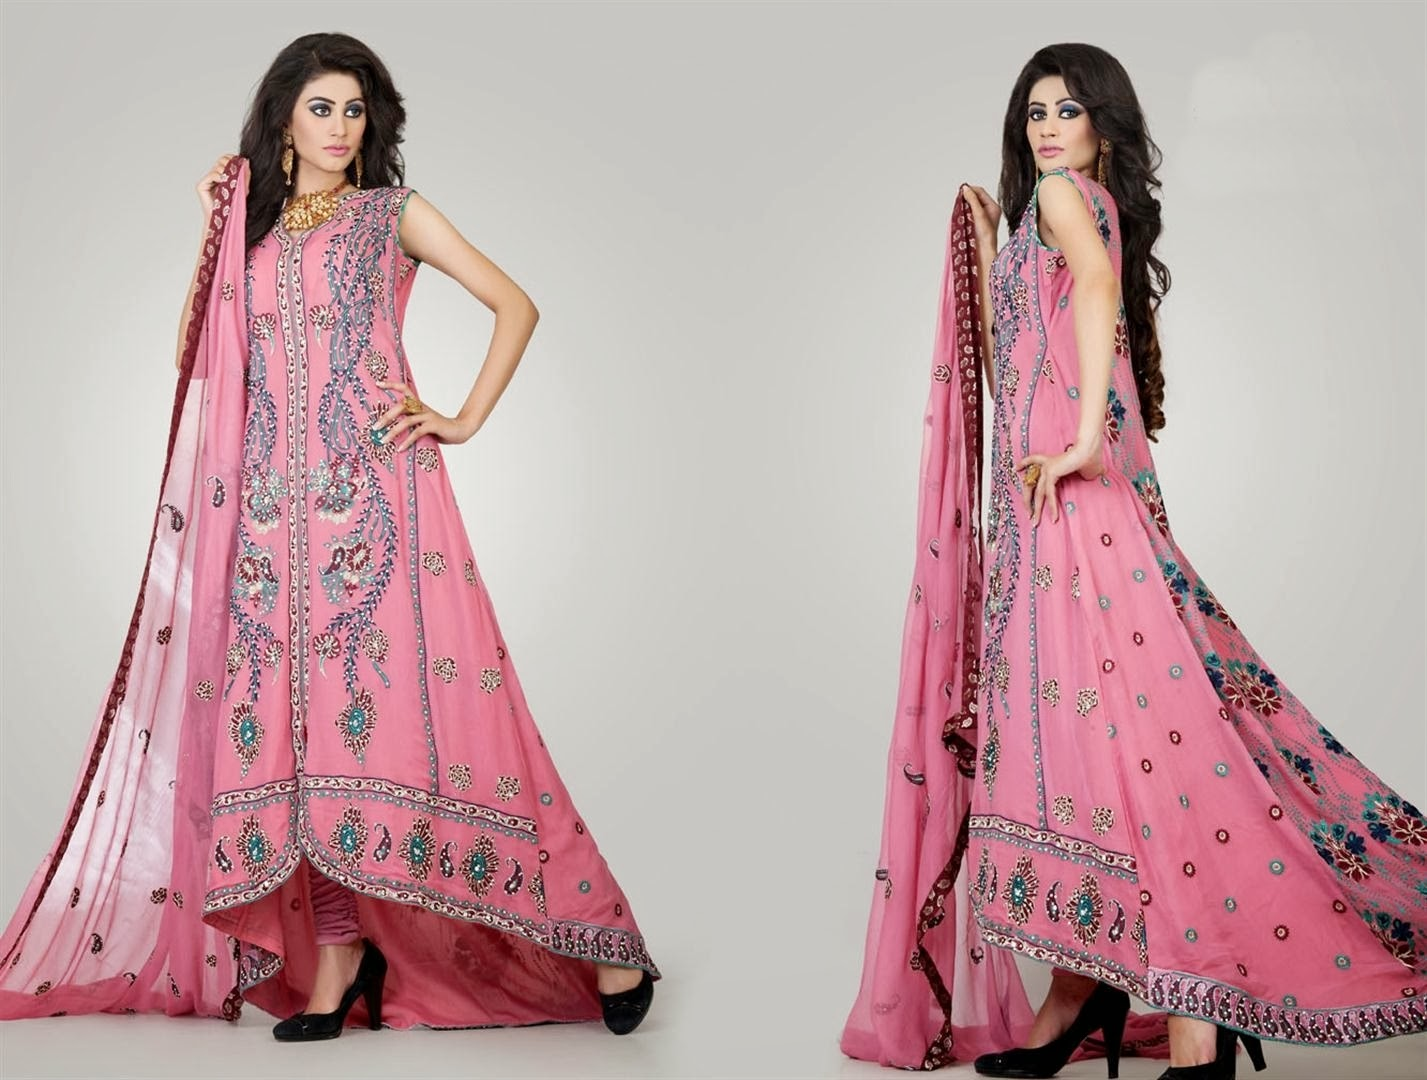 Fancy Farasha Designs For Evening Parties Heavy Formal